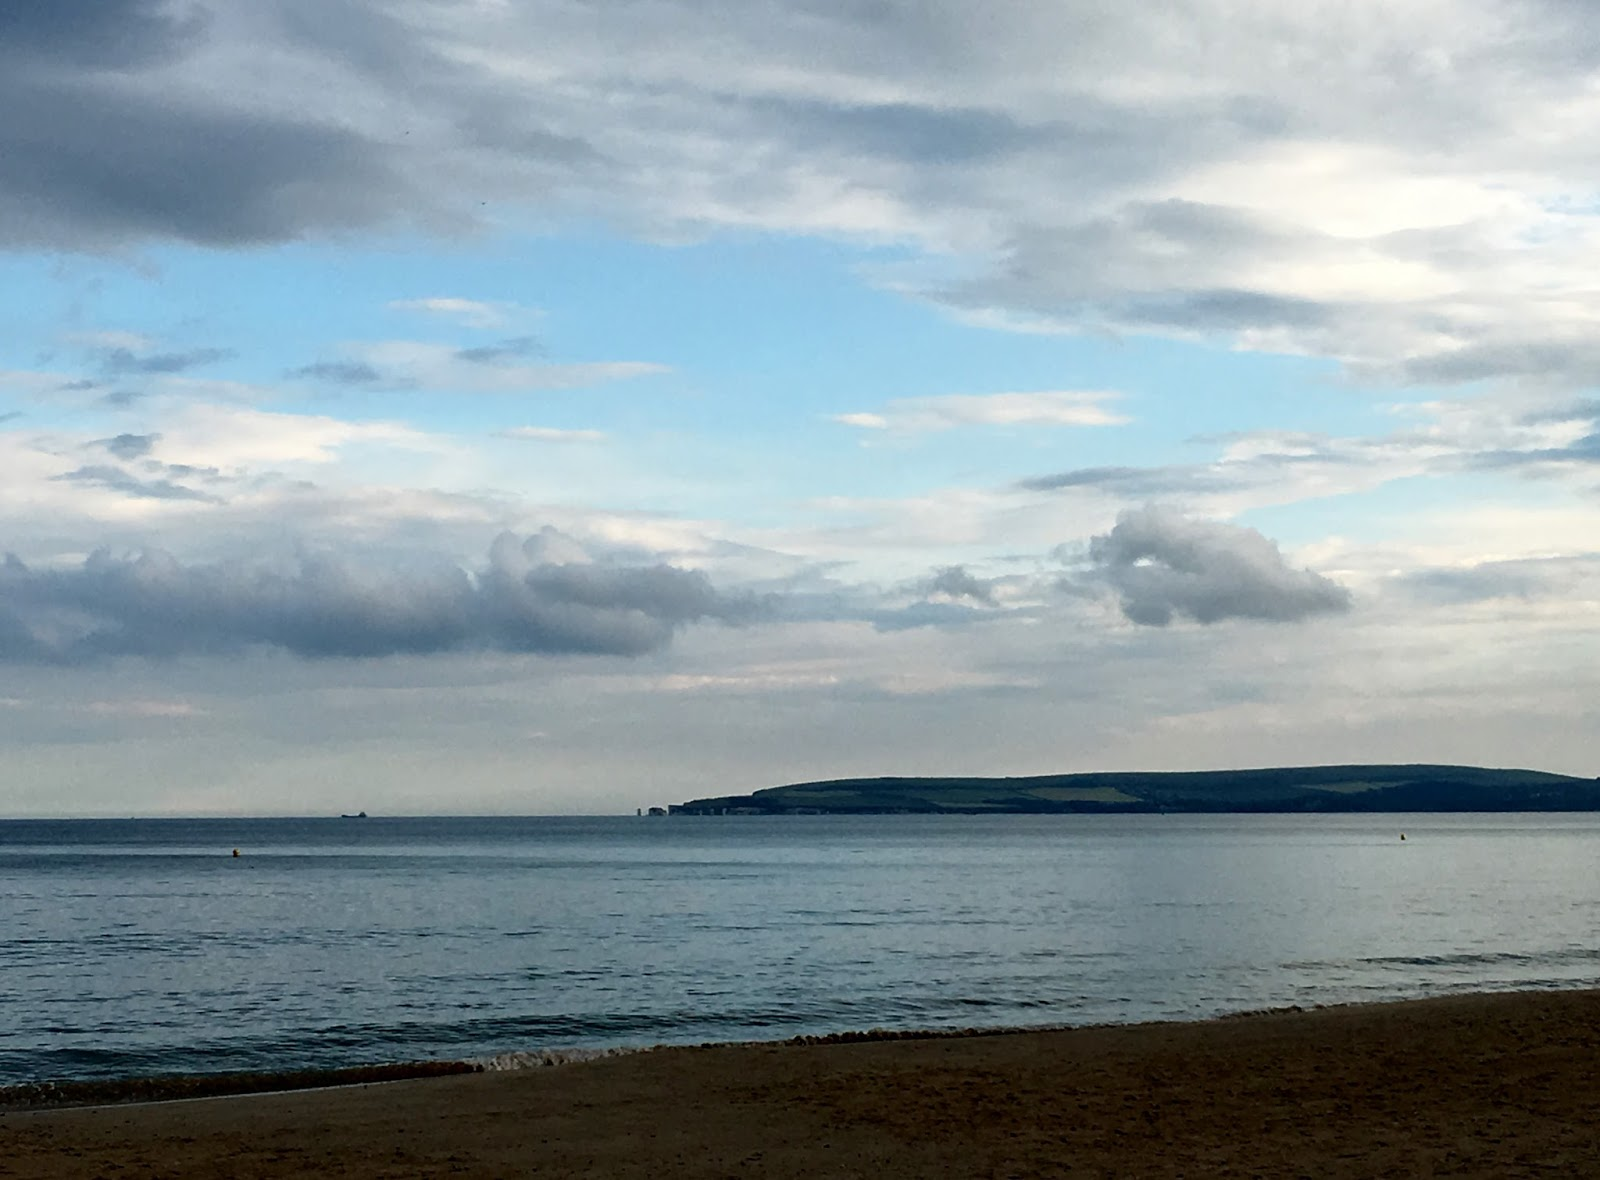 Bournemouth, Swanage, Portsmouth – travels with Battleaxe, three piers!